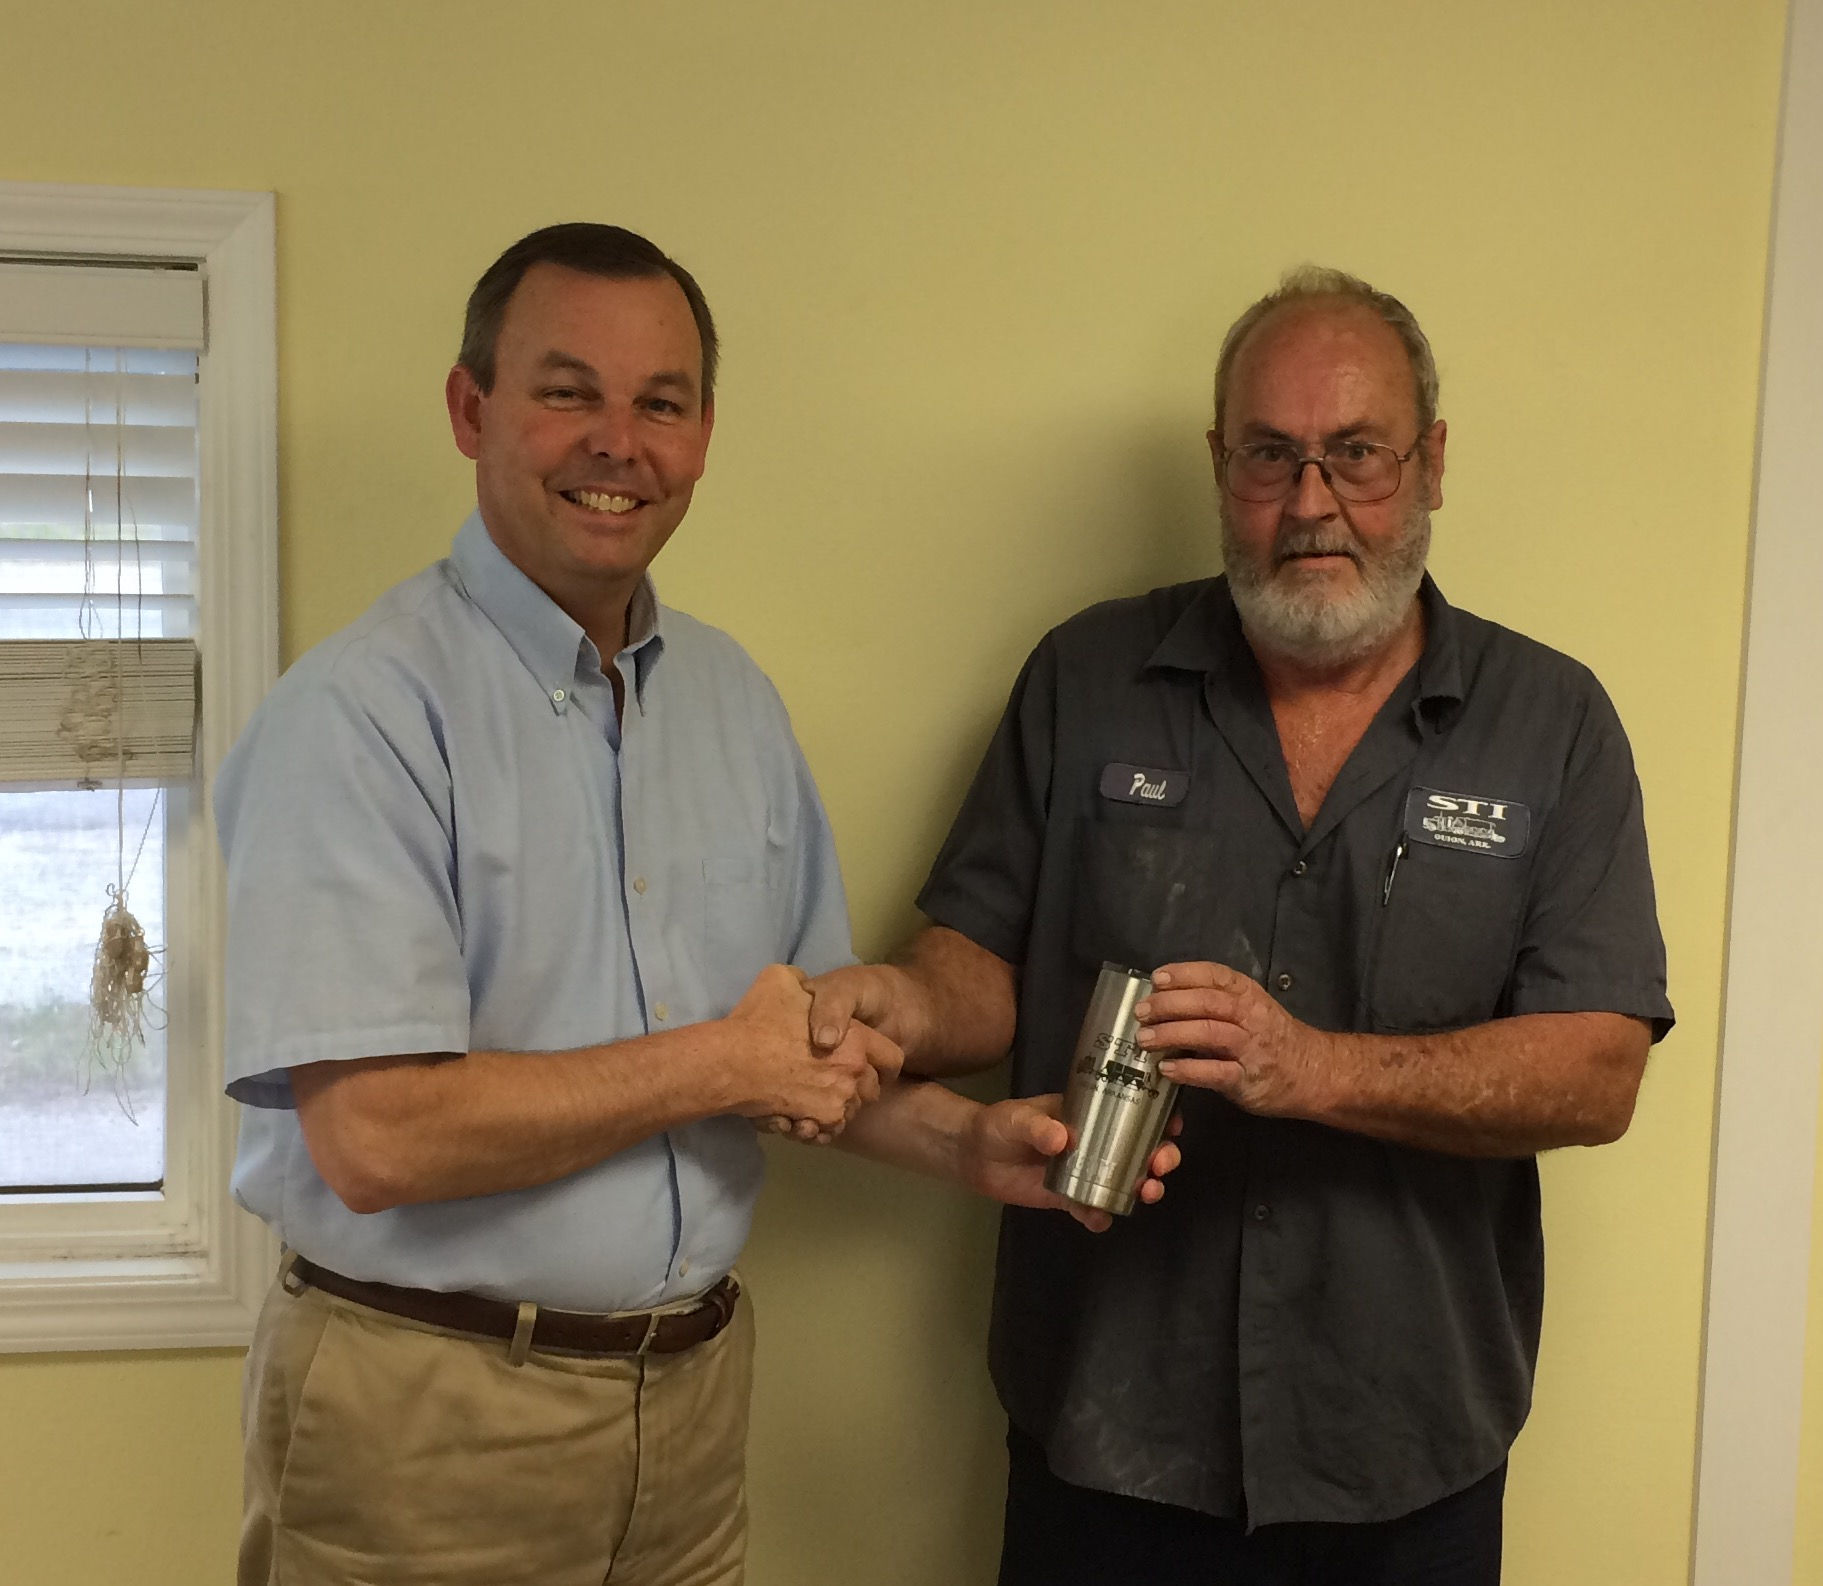 Paul Moore receiving Yeti appreciation cup from STI President James Knight.